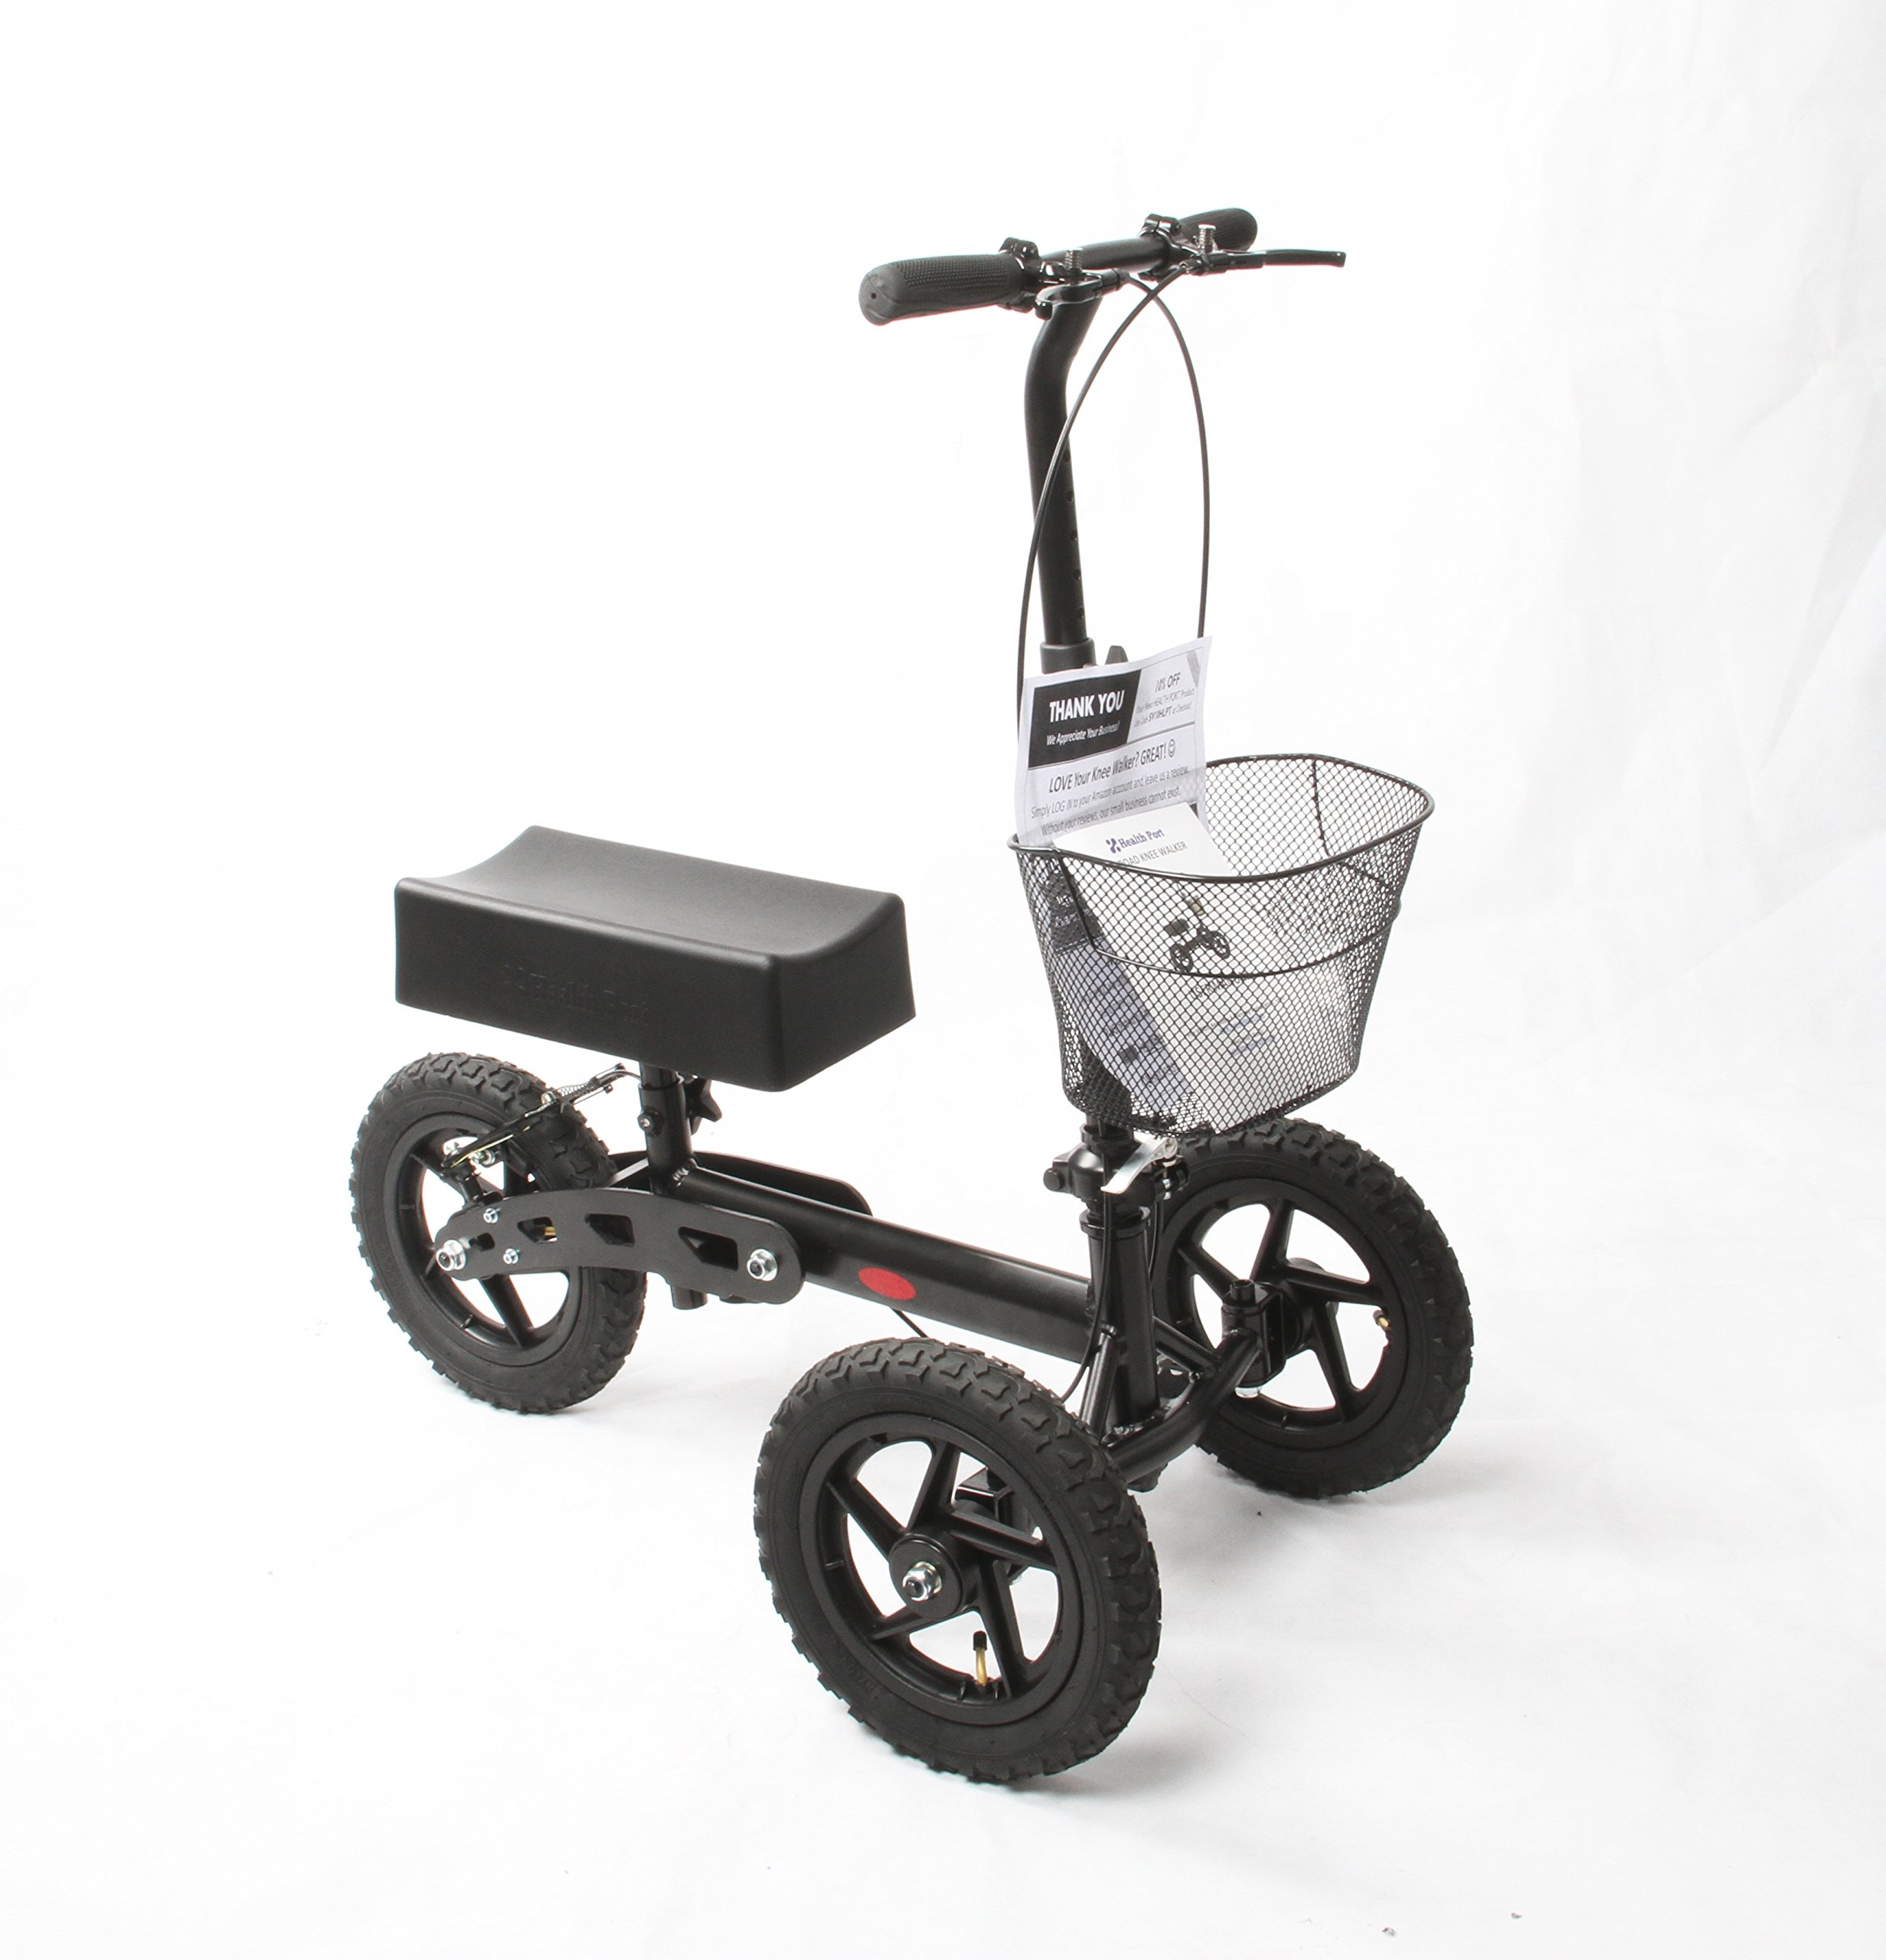 Health Port All-Road Knee Walker | Steerable Medical Scooter for Adults | Foldable & Lightweight |12'' Pneumatic Smooth Wheels & Locking Parking Brakes | Adjustable Knee Pad & Handlebar | Matte Black